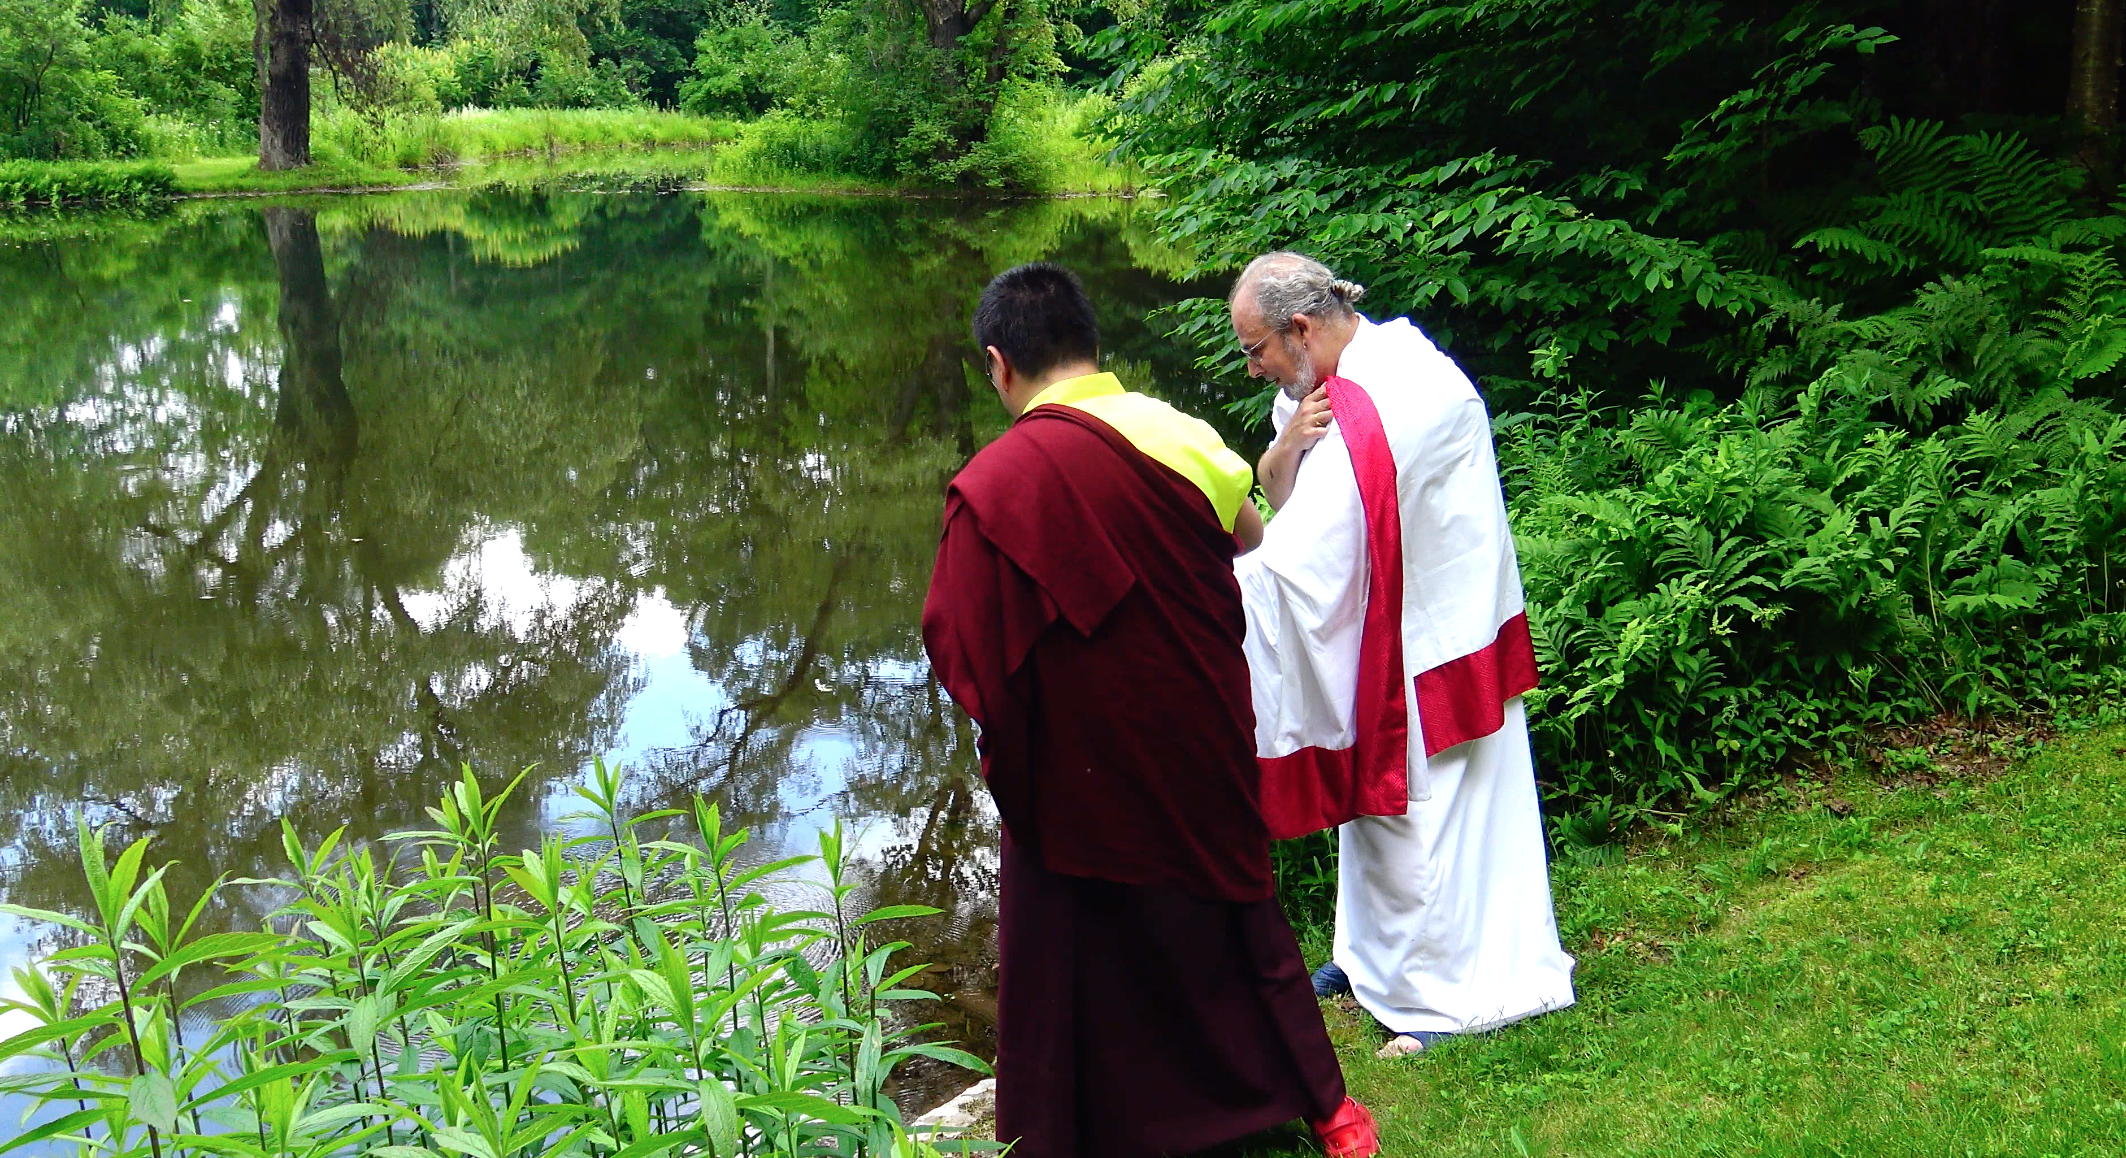 Rinpoche offering Mendrup to the pond dwellers